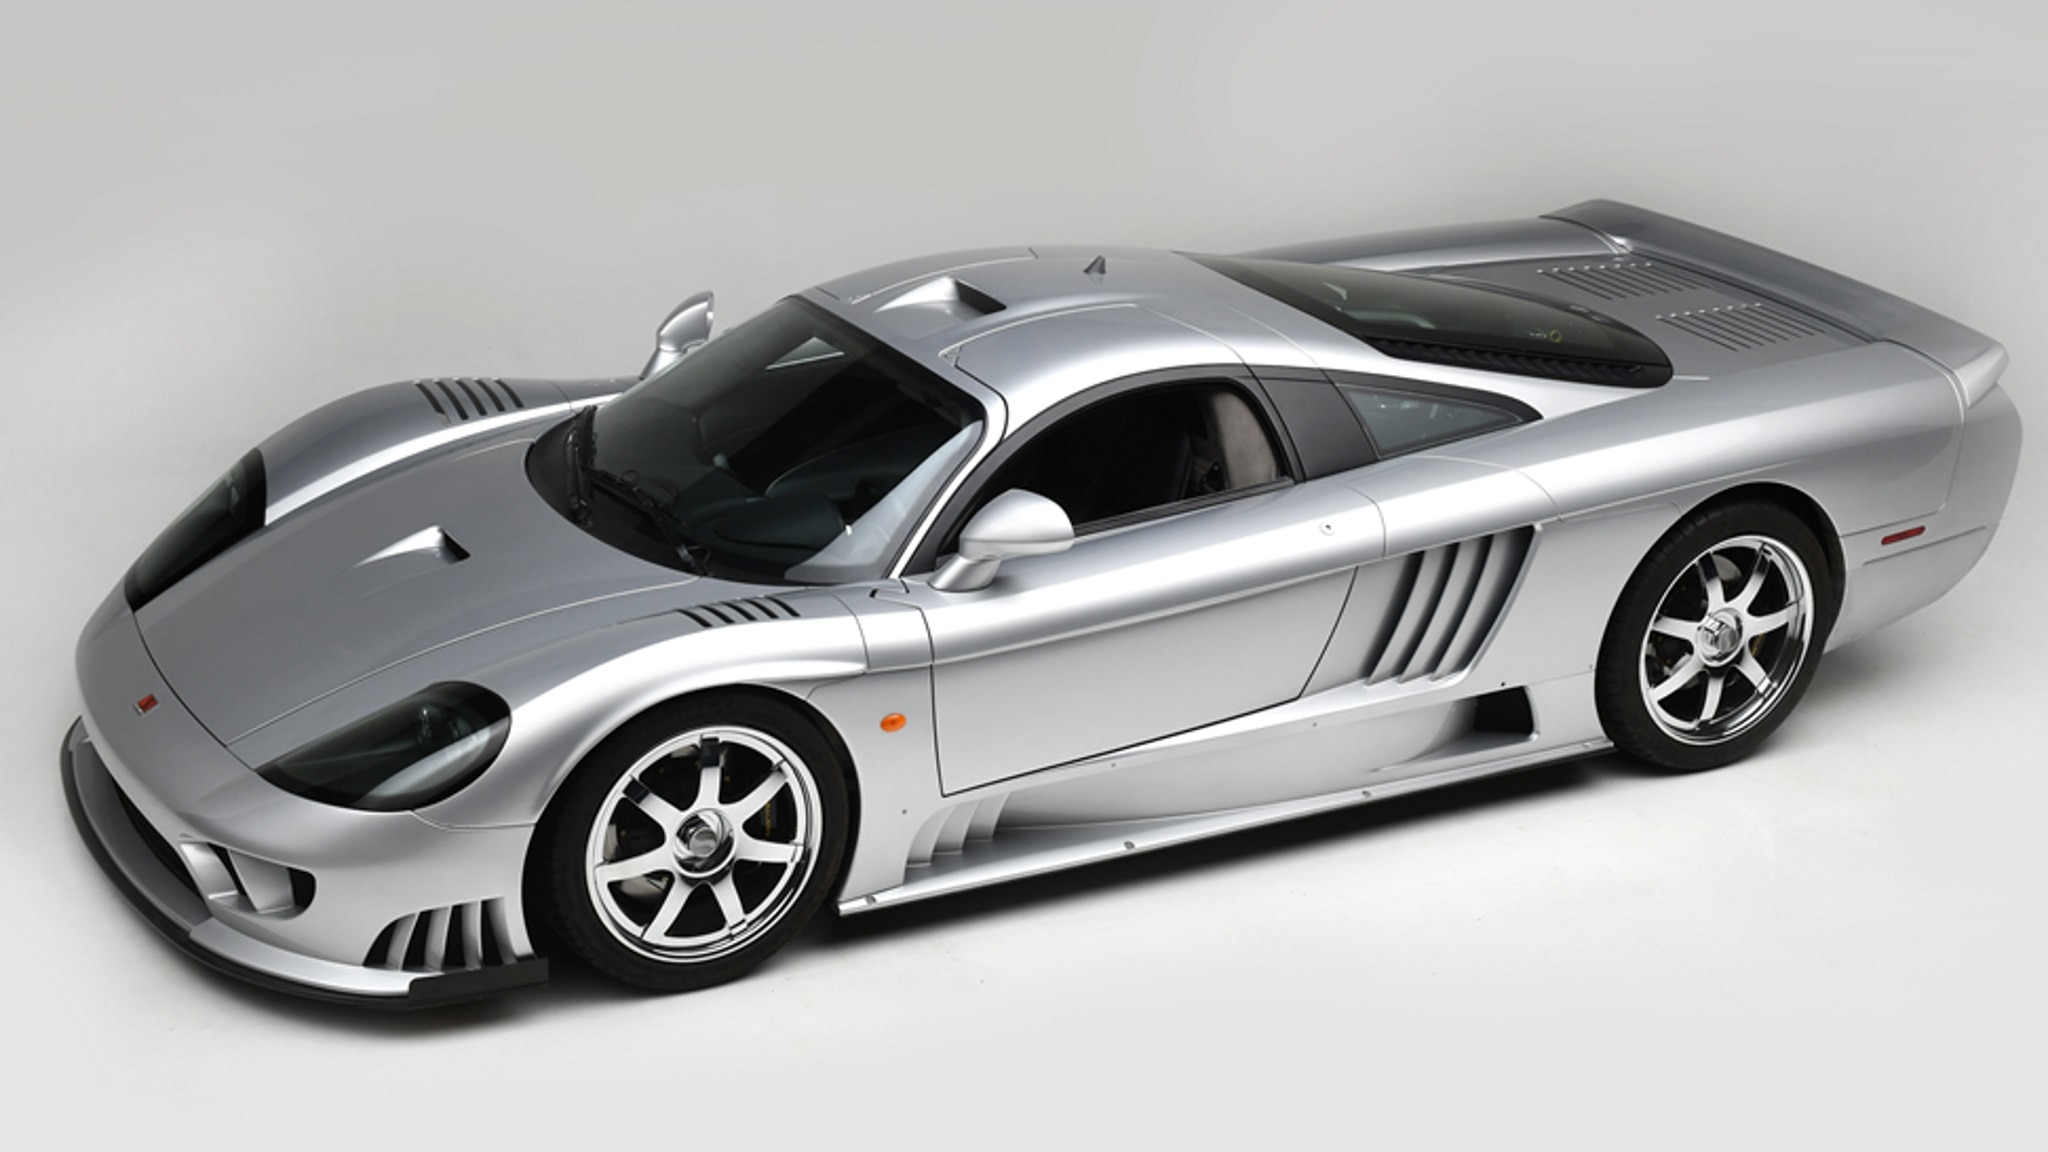 2005 Saleen S7 Twin Turbo Front Three Quarter Overhead